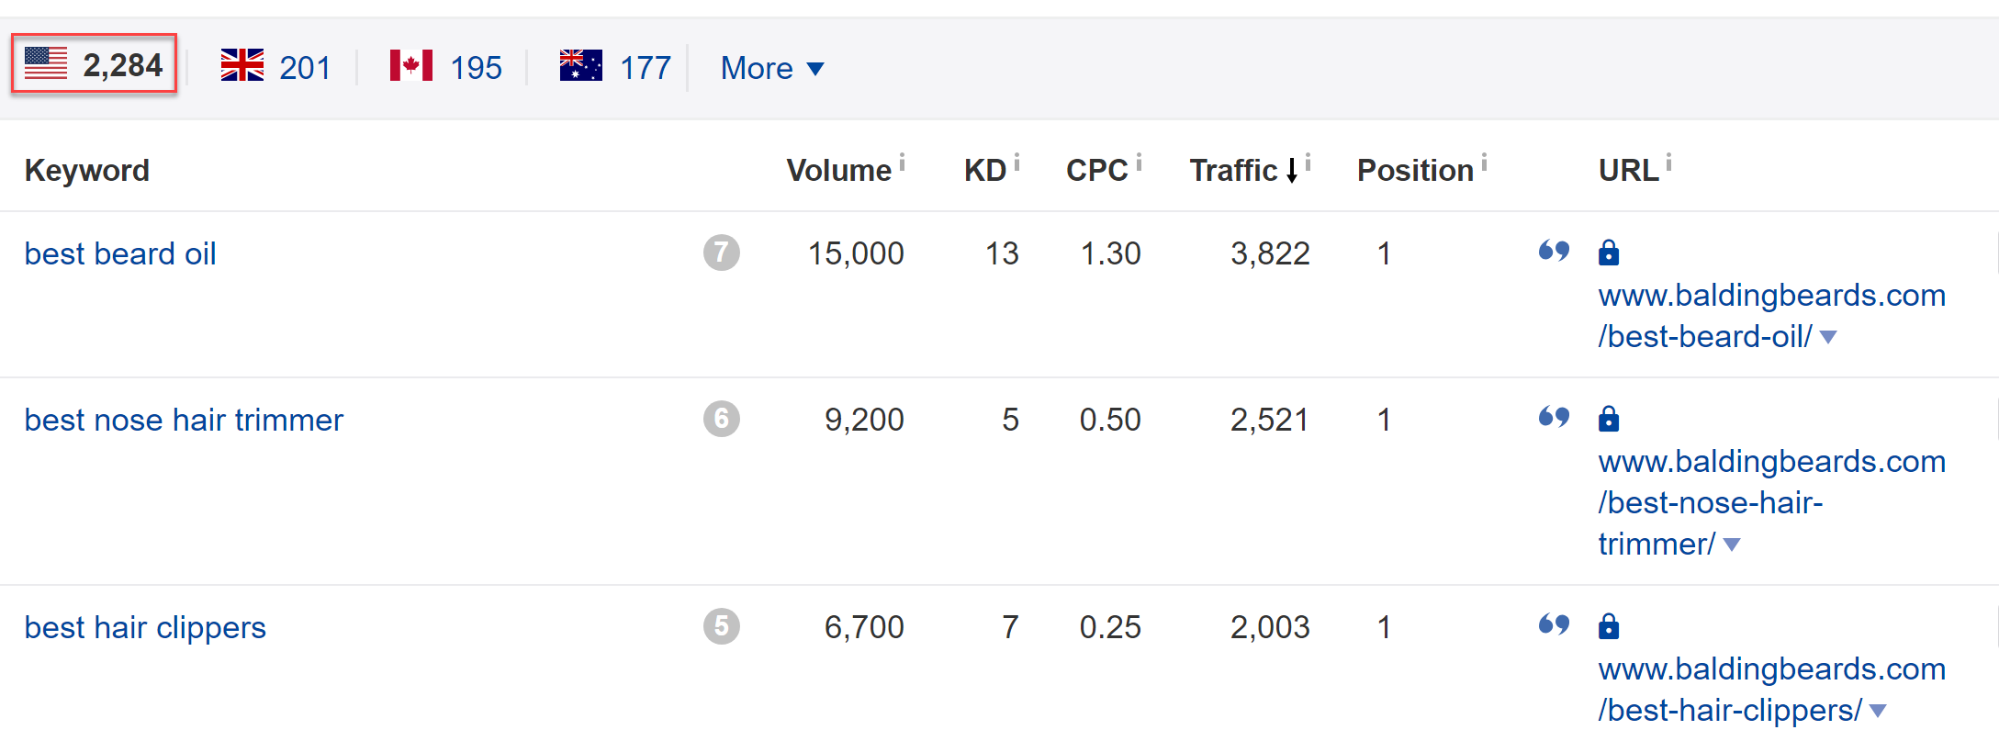 Article ranking for 2,284 keywords